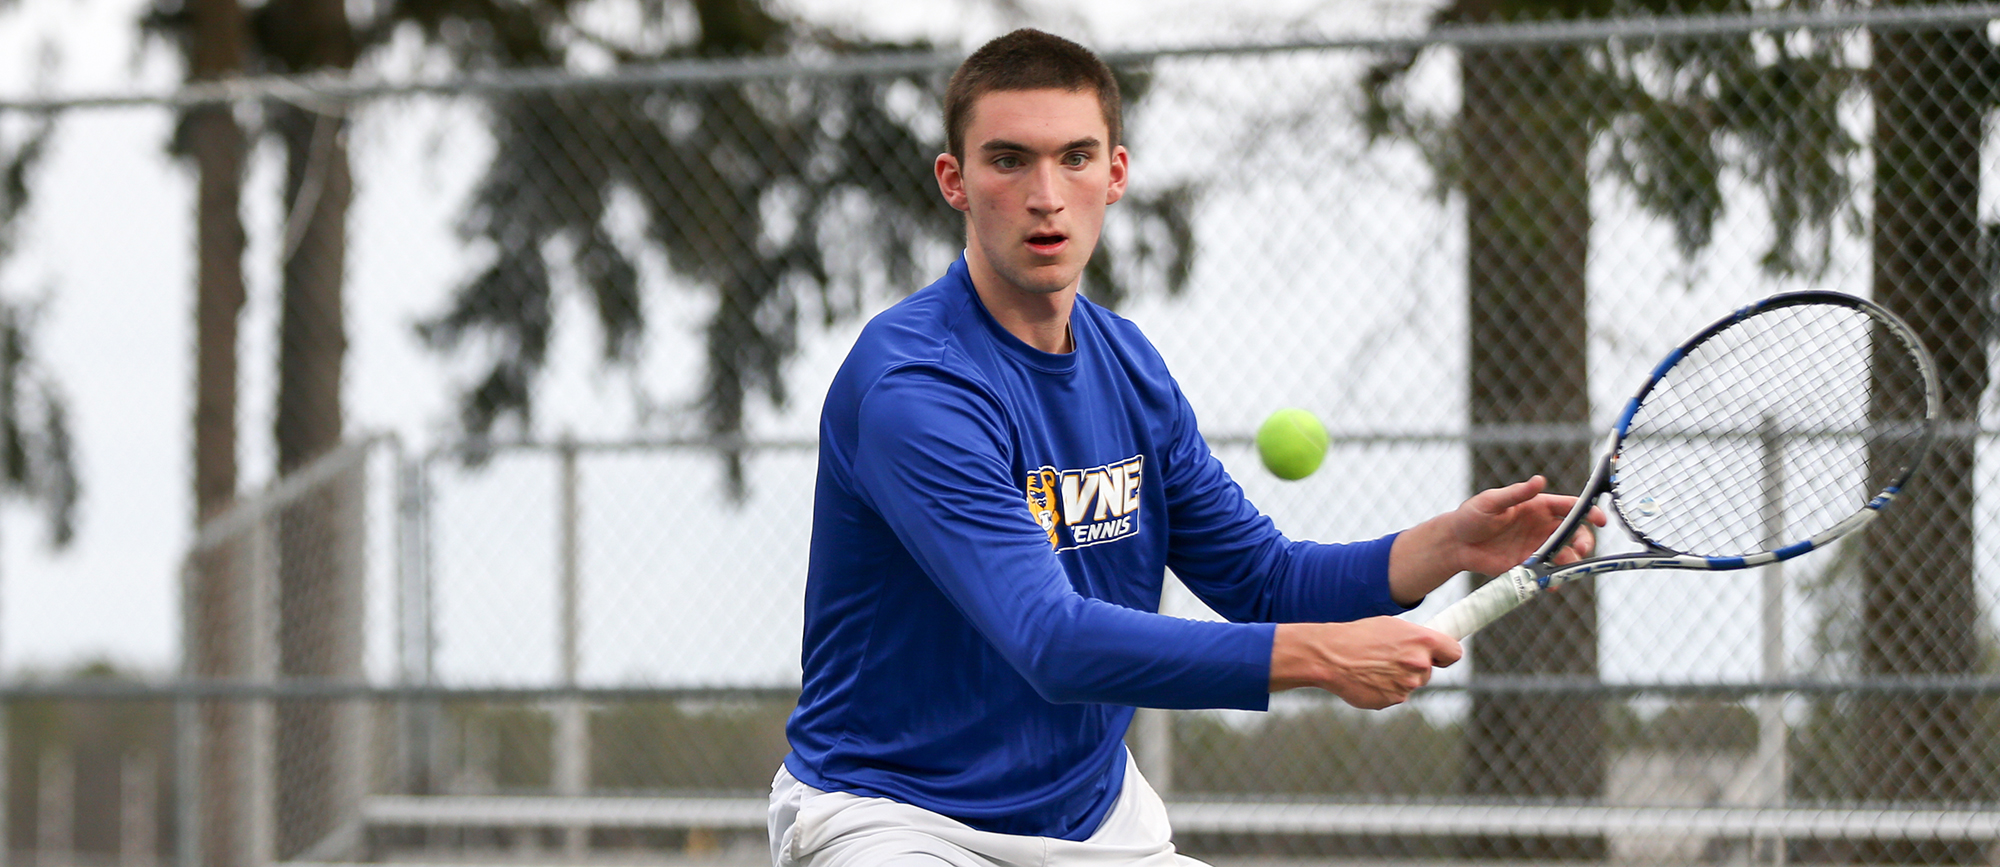 Griffin Arnold posted a 7-5, 6-2 win at No. 5 singles in Western New England's 9-0 victory over Salve Regina on Wednesday. (Photo by Chris Marion)